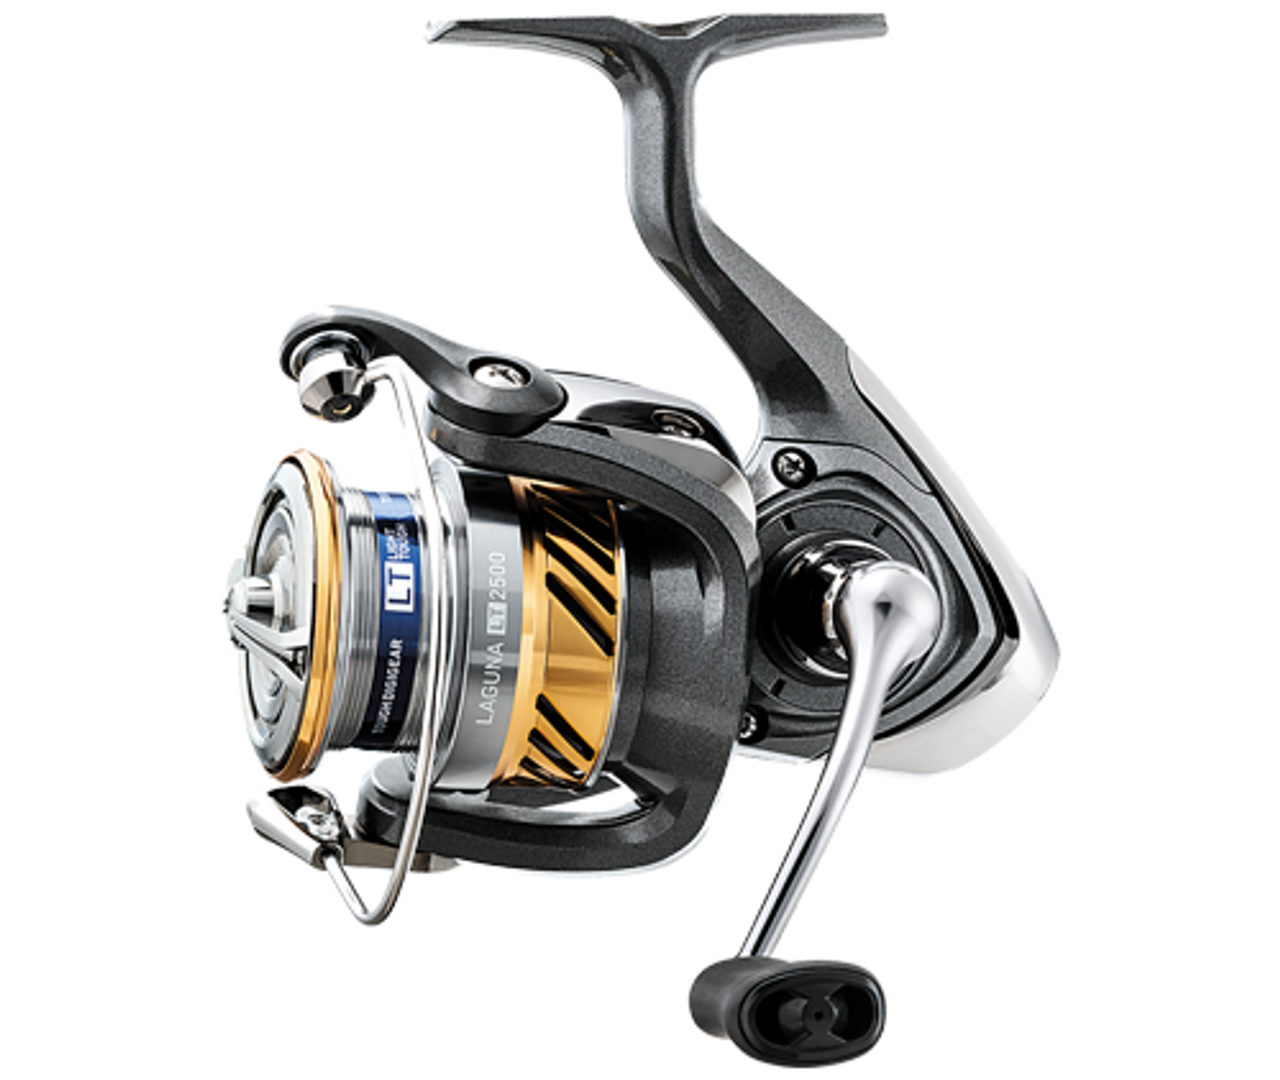 Daiwa Laguna LT Spinning Reels CHOOSE YOUR MODEL!